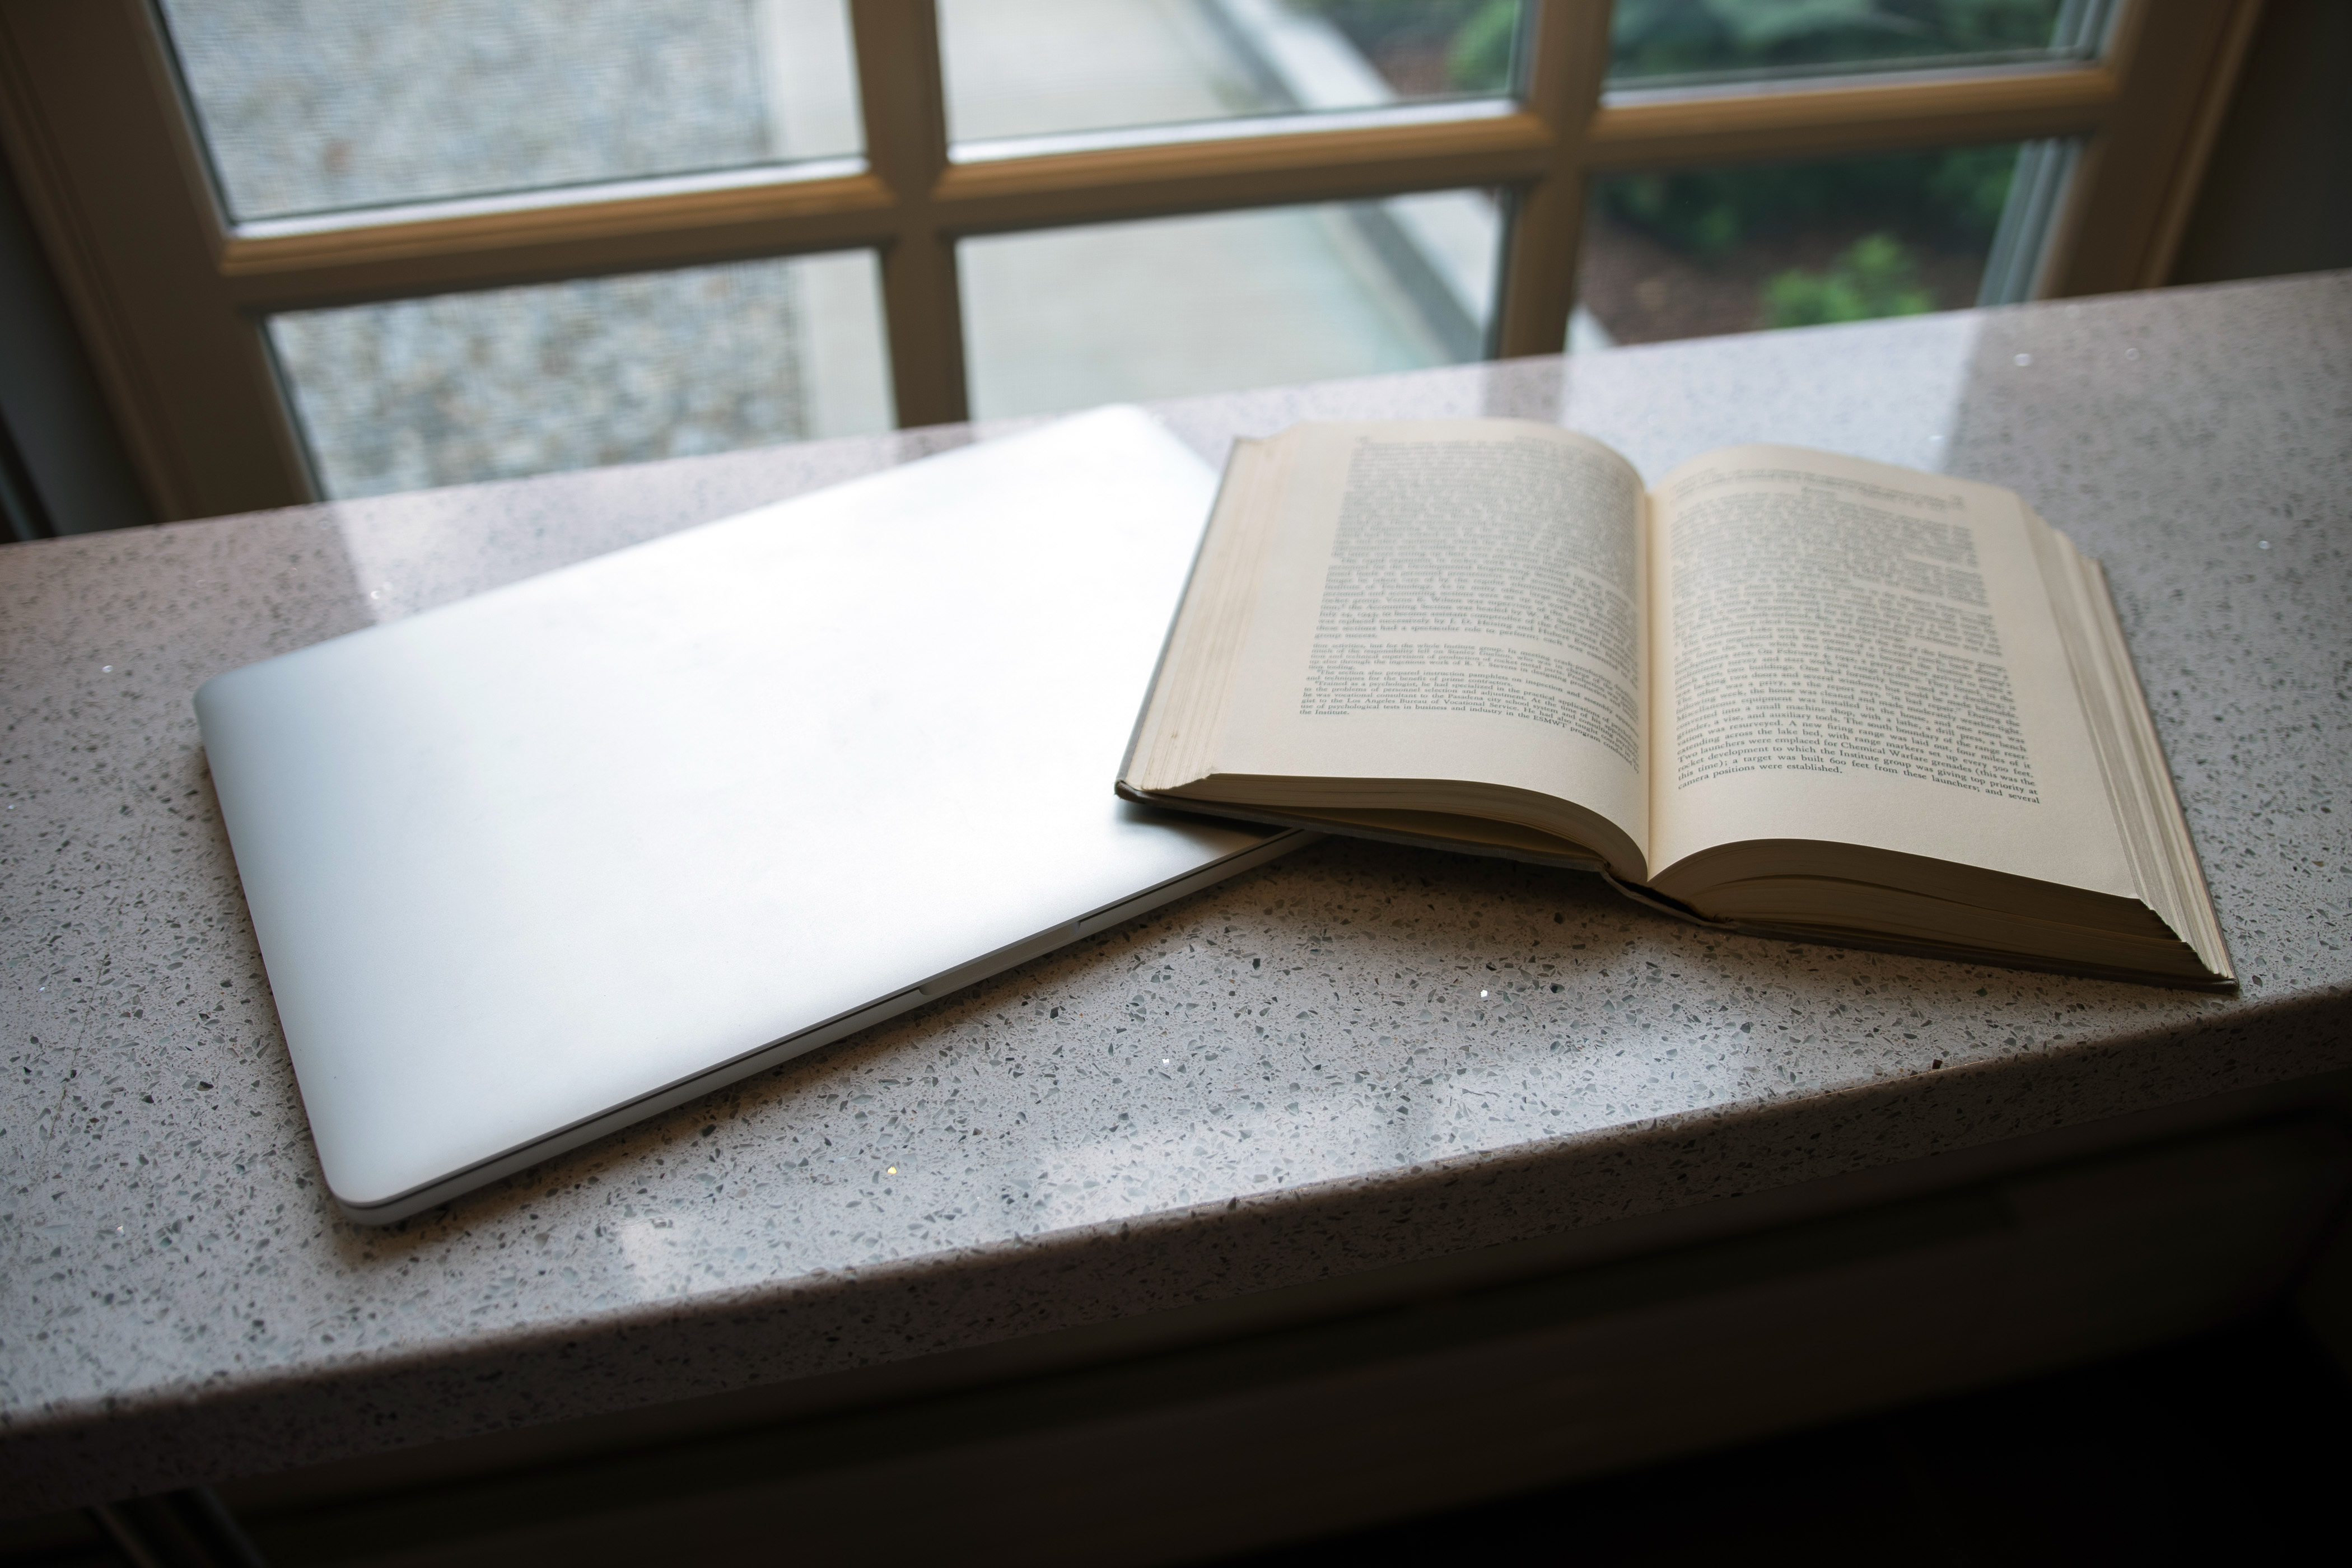 open book and closed laptop on top of desk overlooking a window